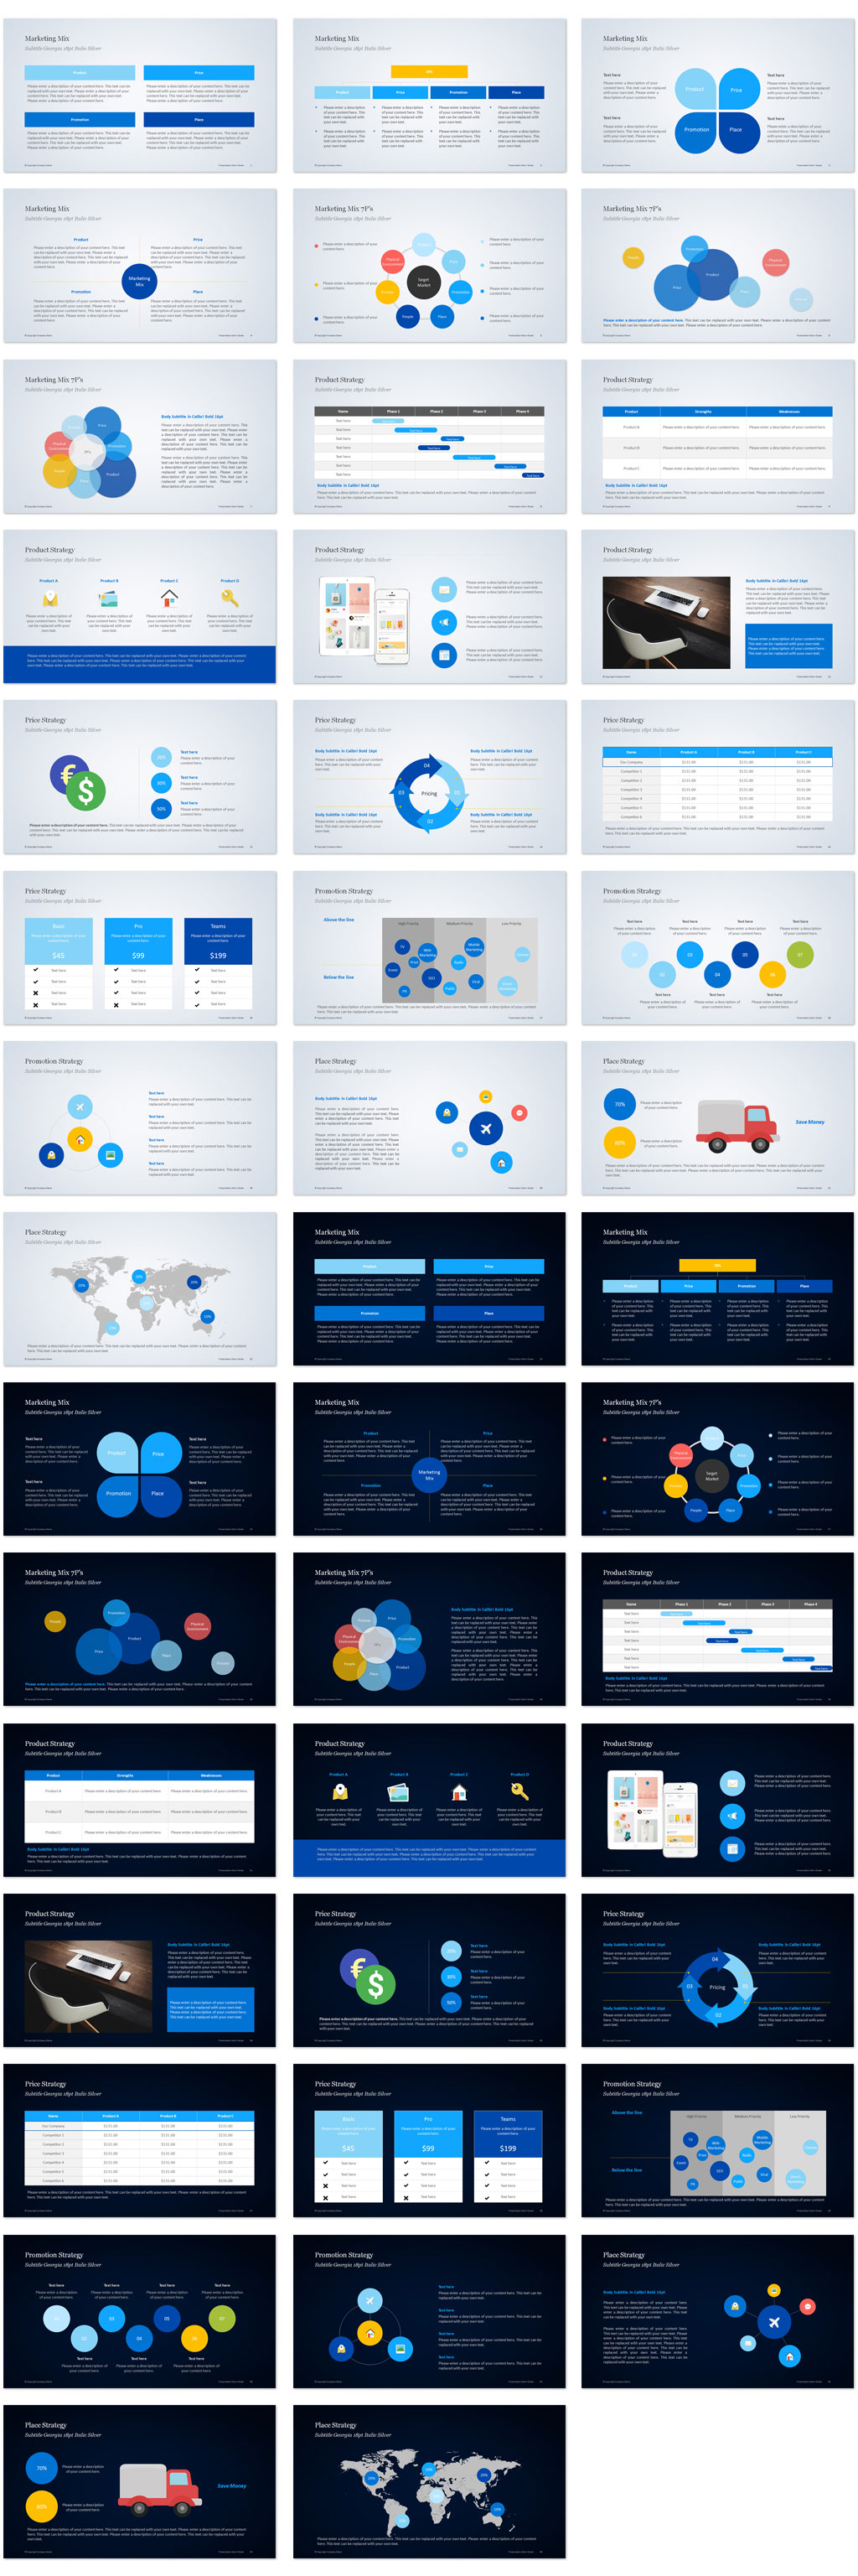 Marketing mix PowerPoint Templates